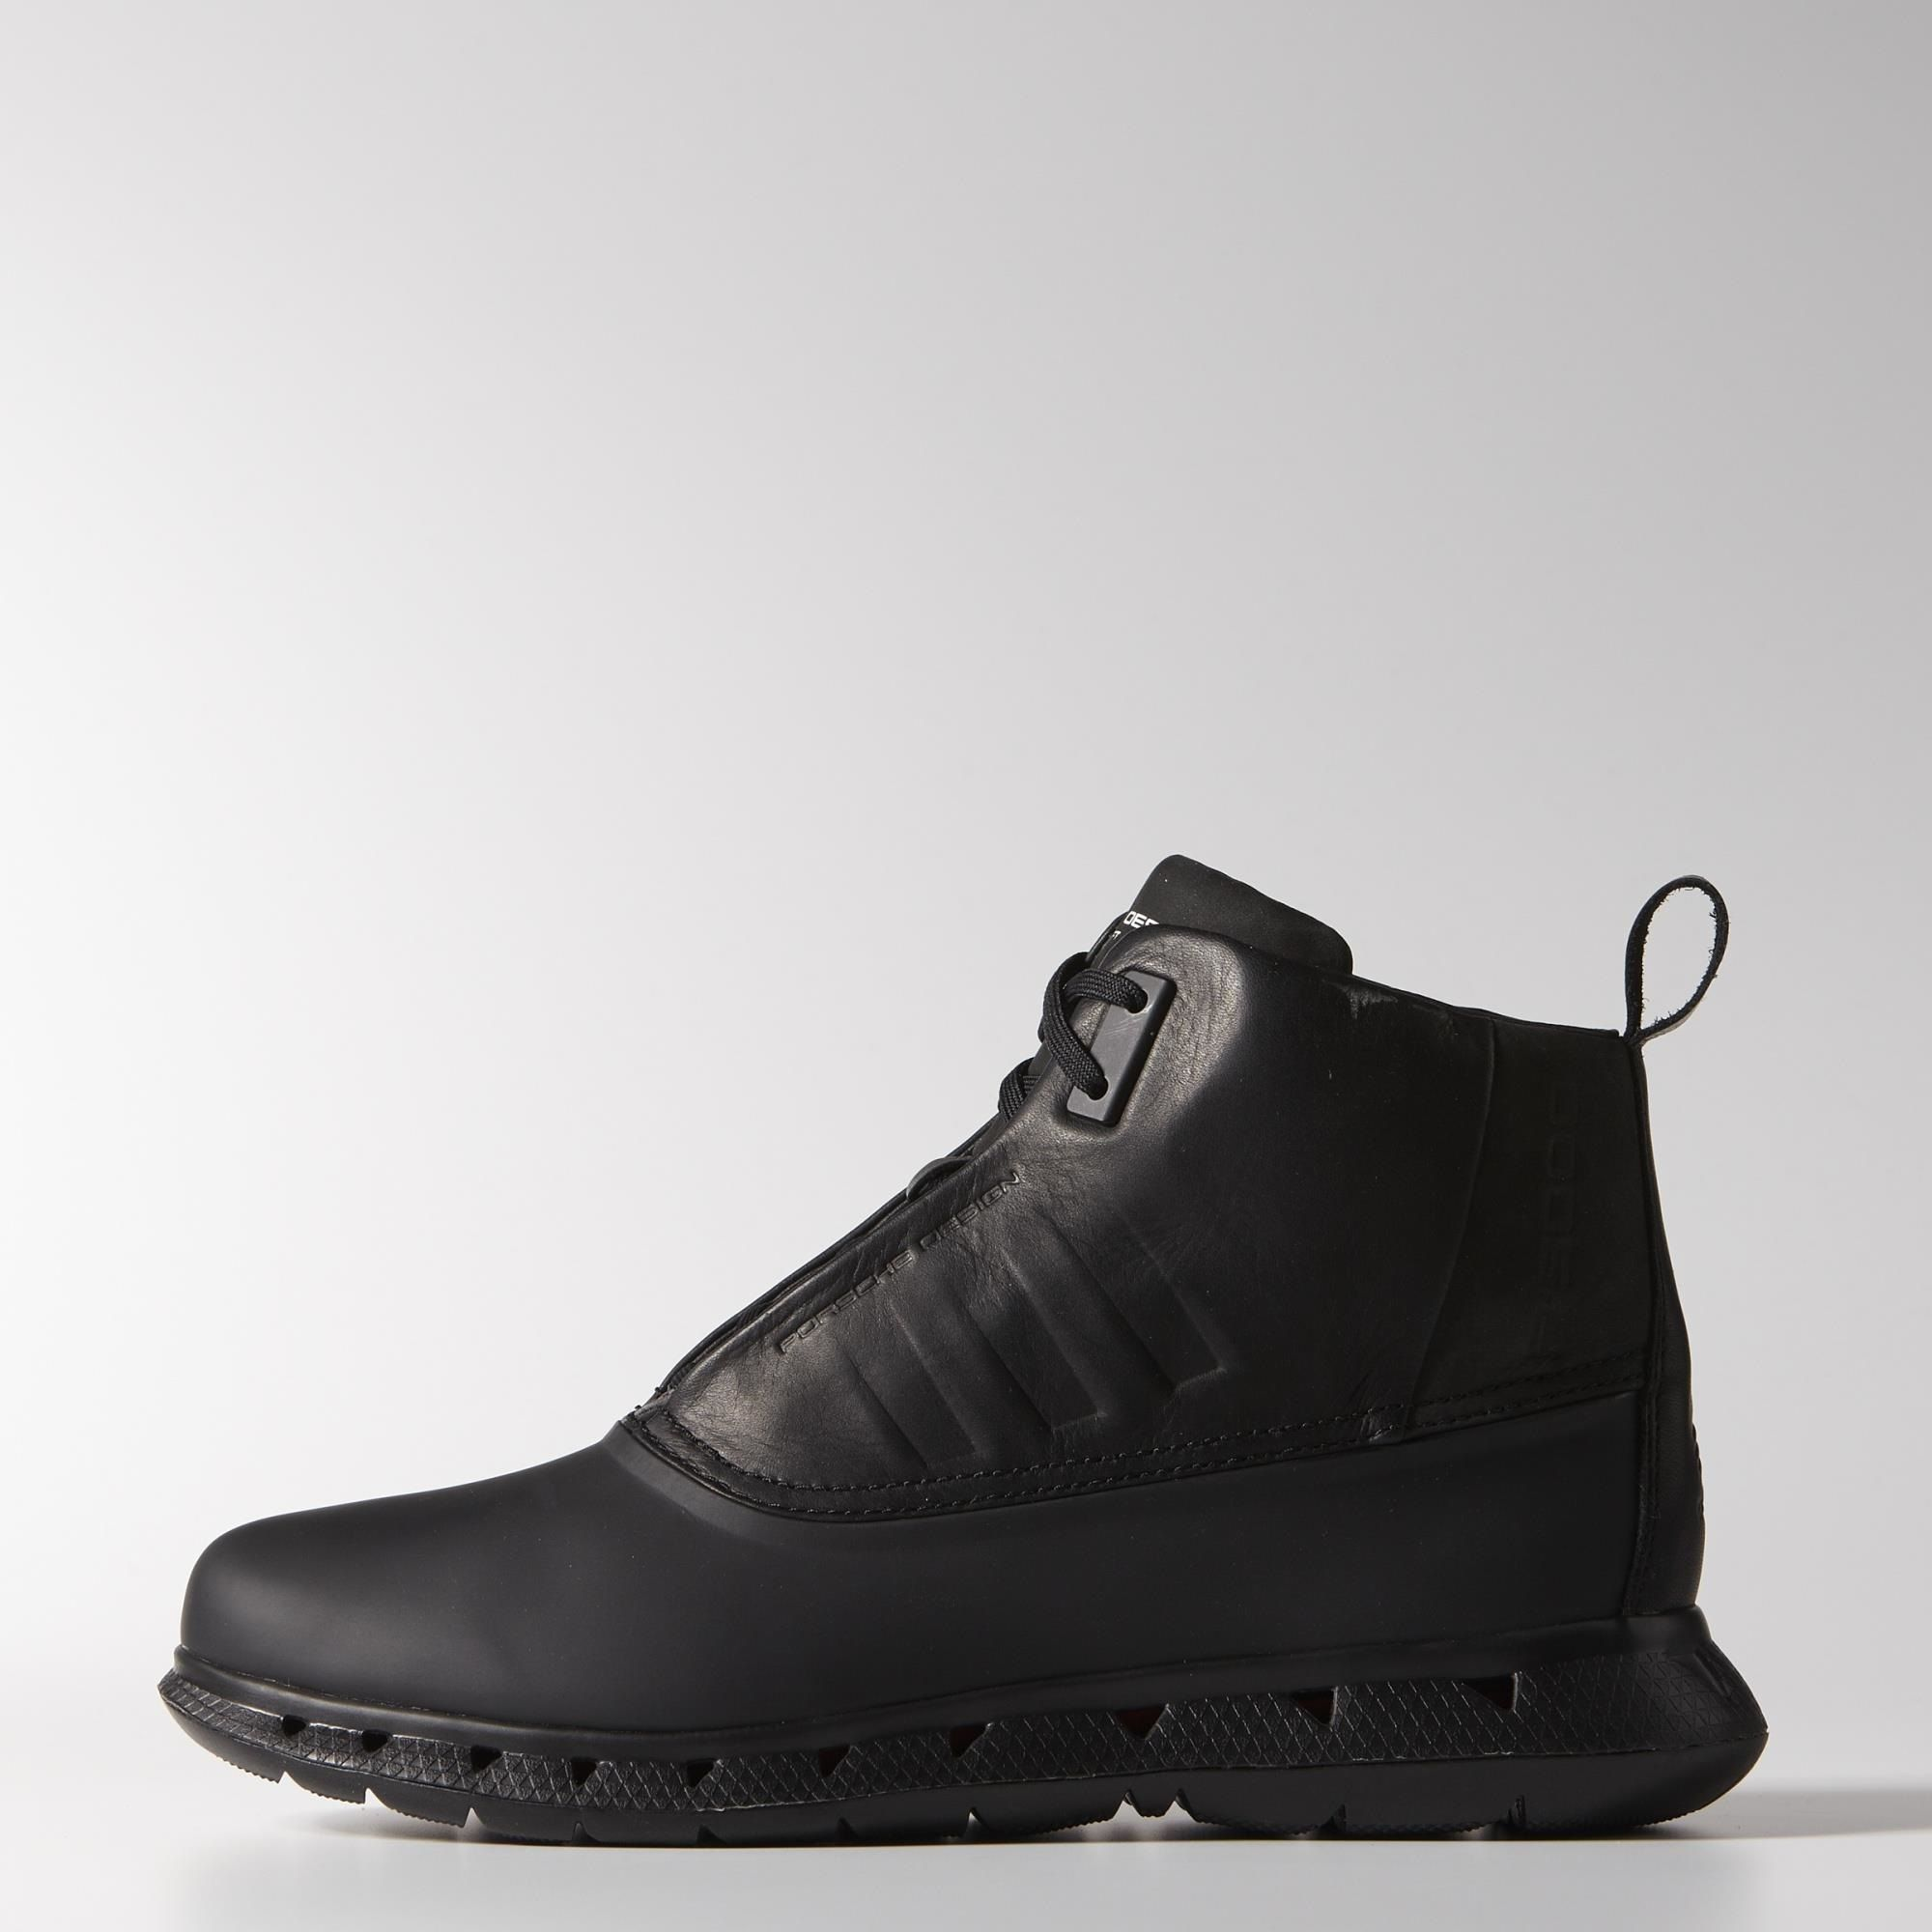 5c61175ae A lighter, more stylish alternative to winter boots, the adidas ...